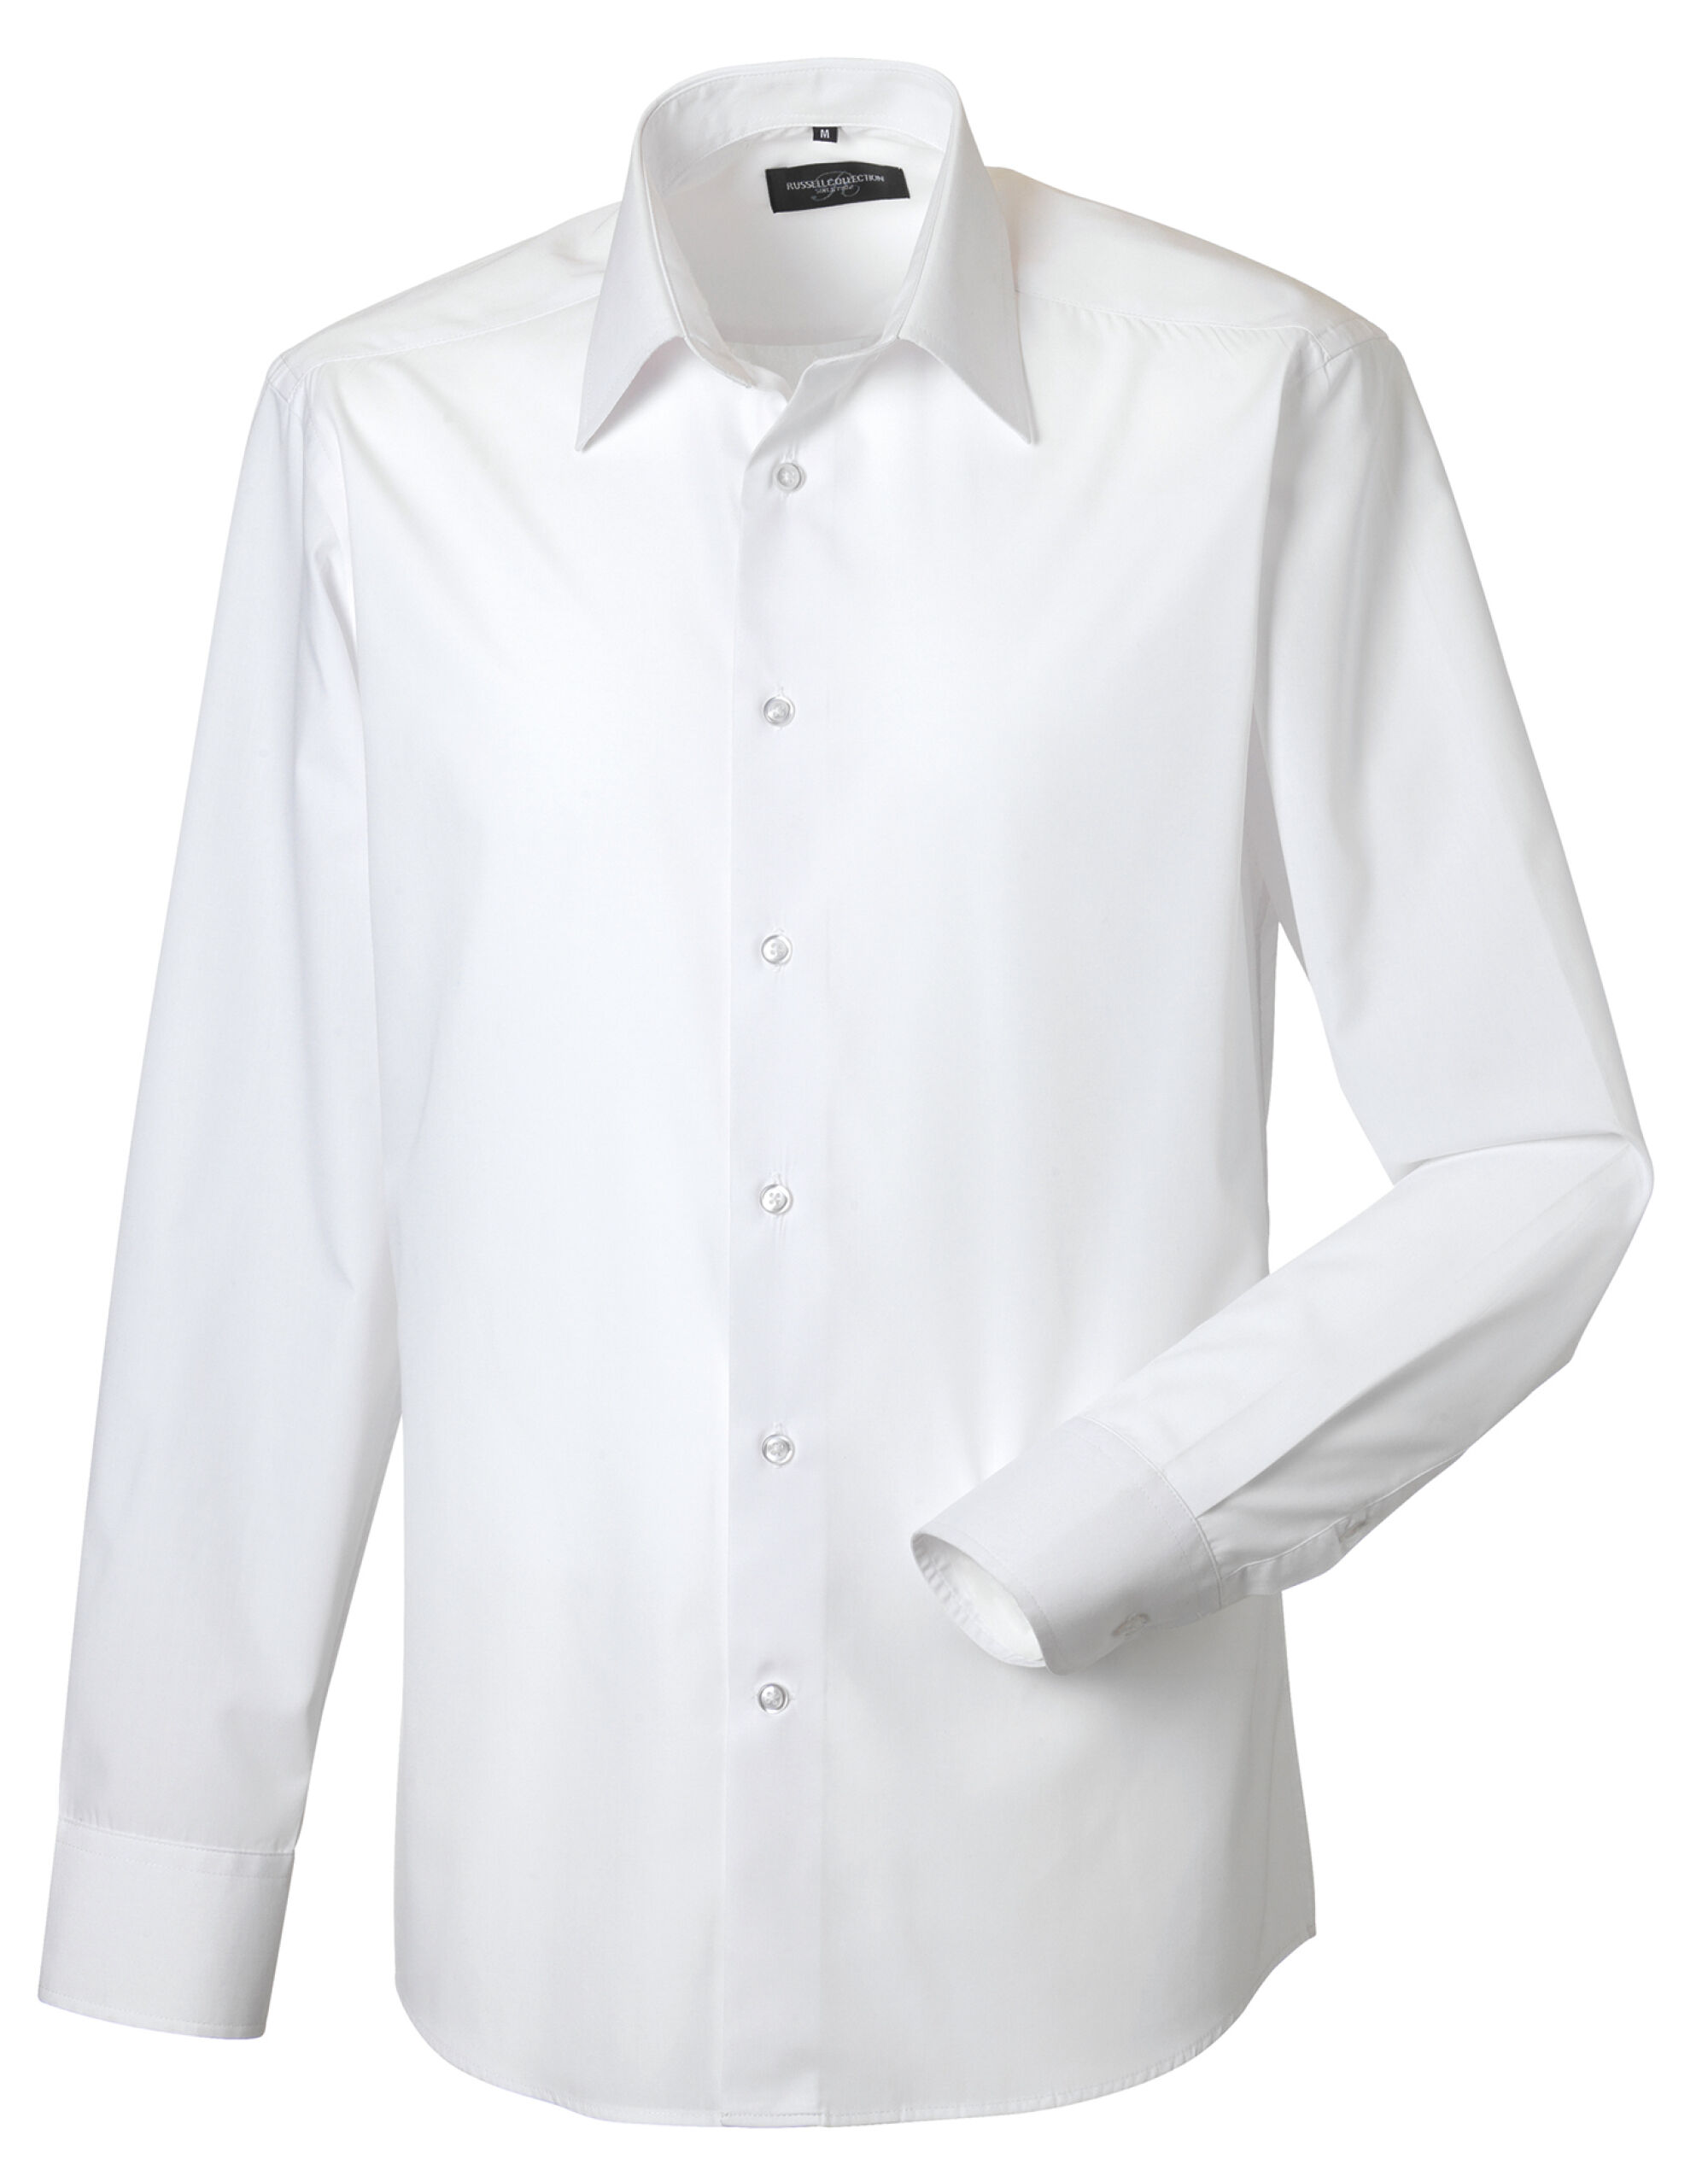 Men's Long Sleeve Poly-Cotton Easy Care Tailored Poplin Shirt